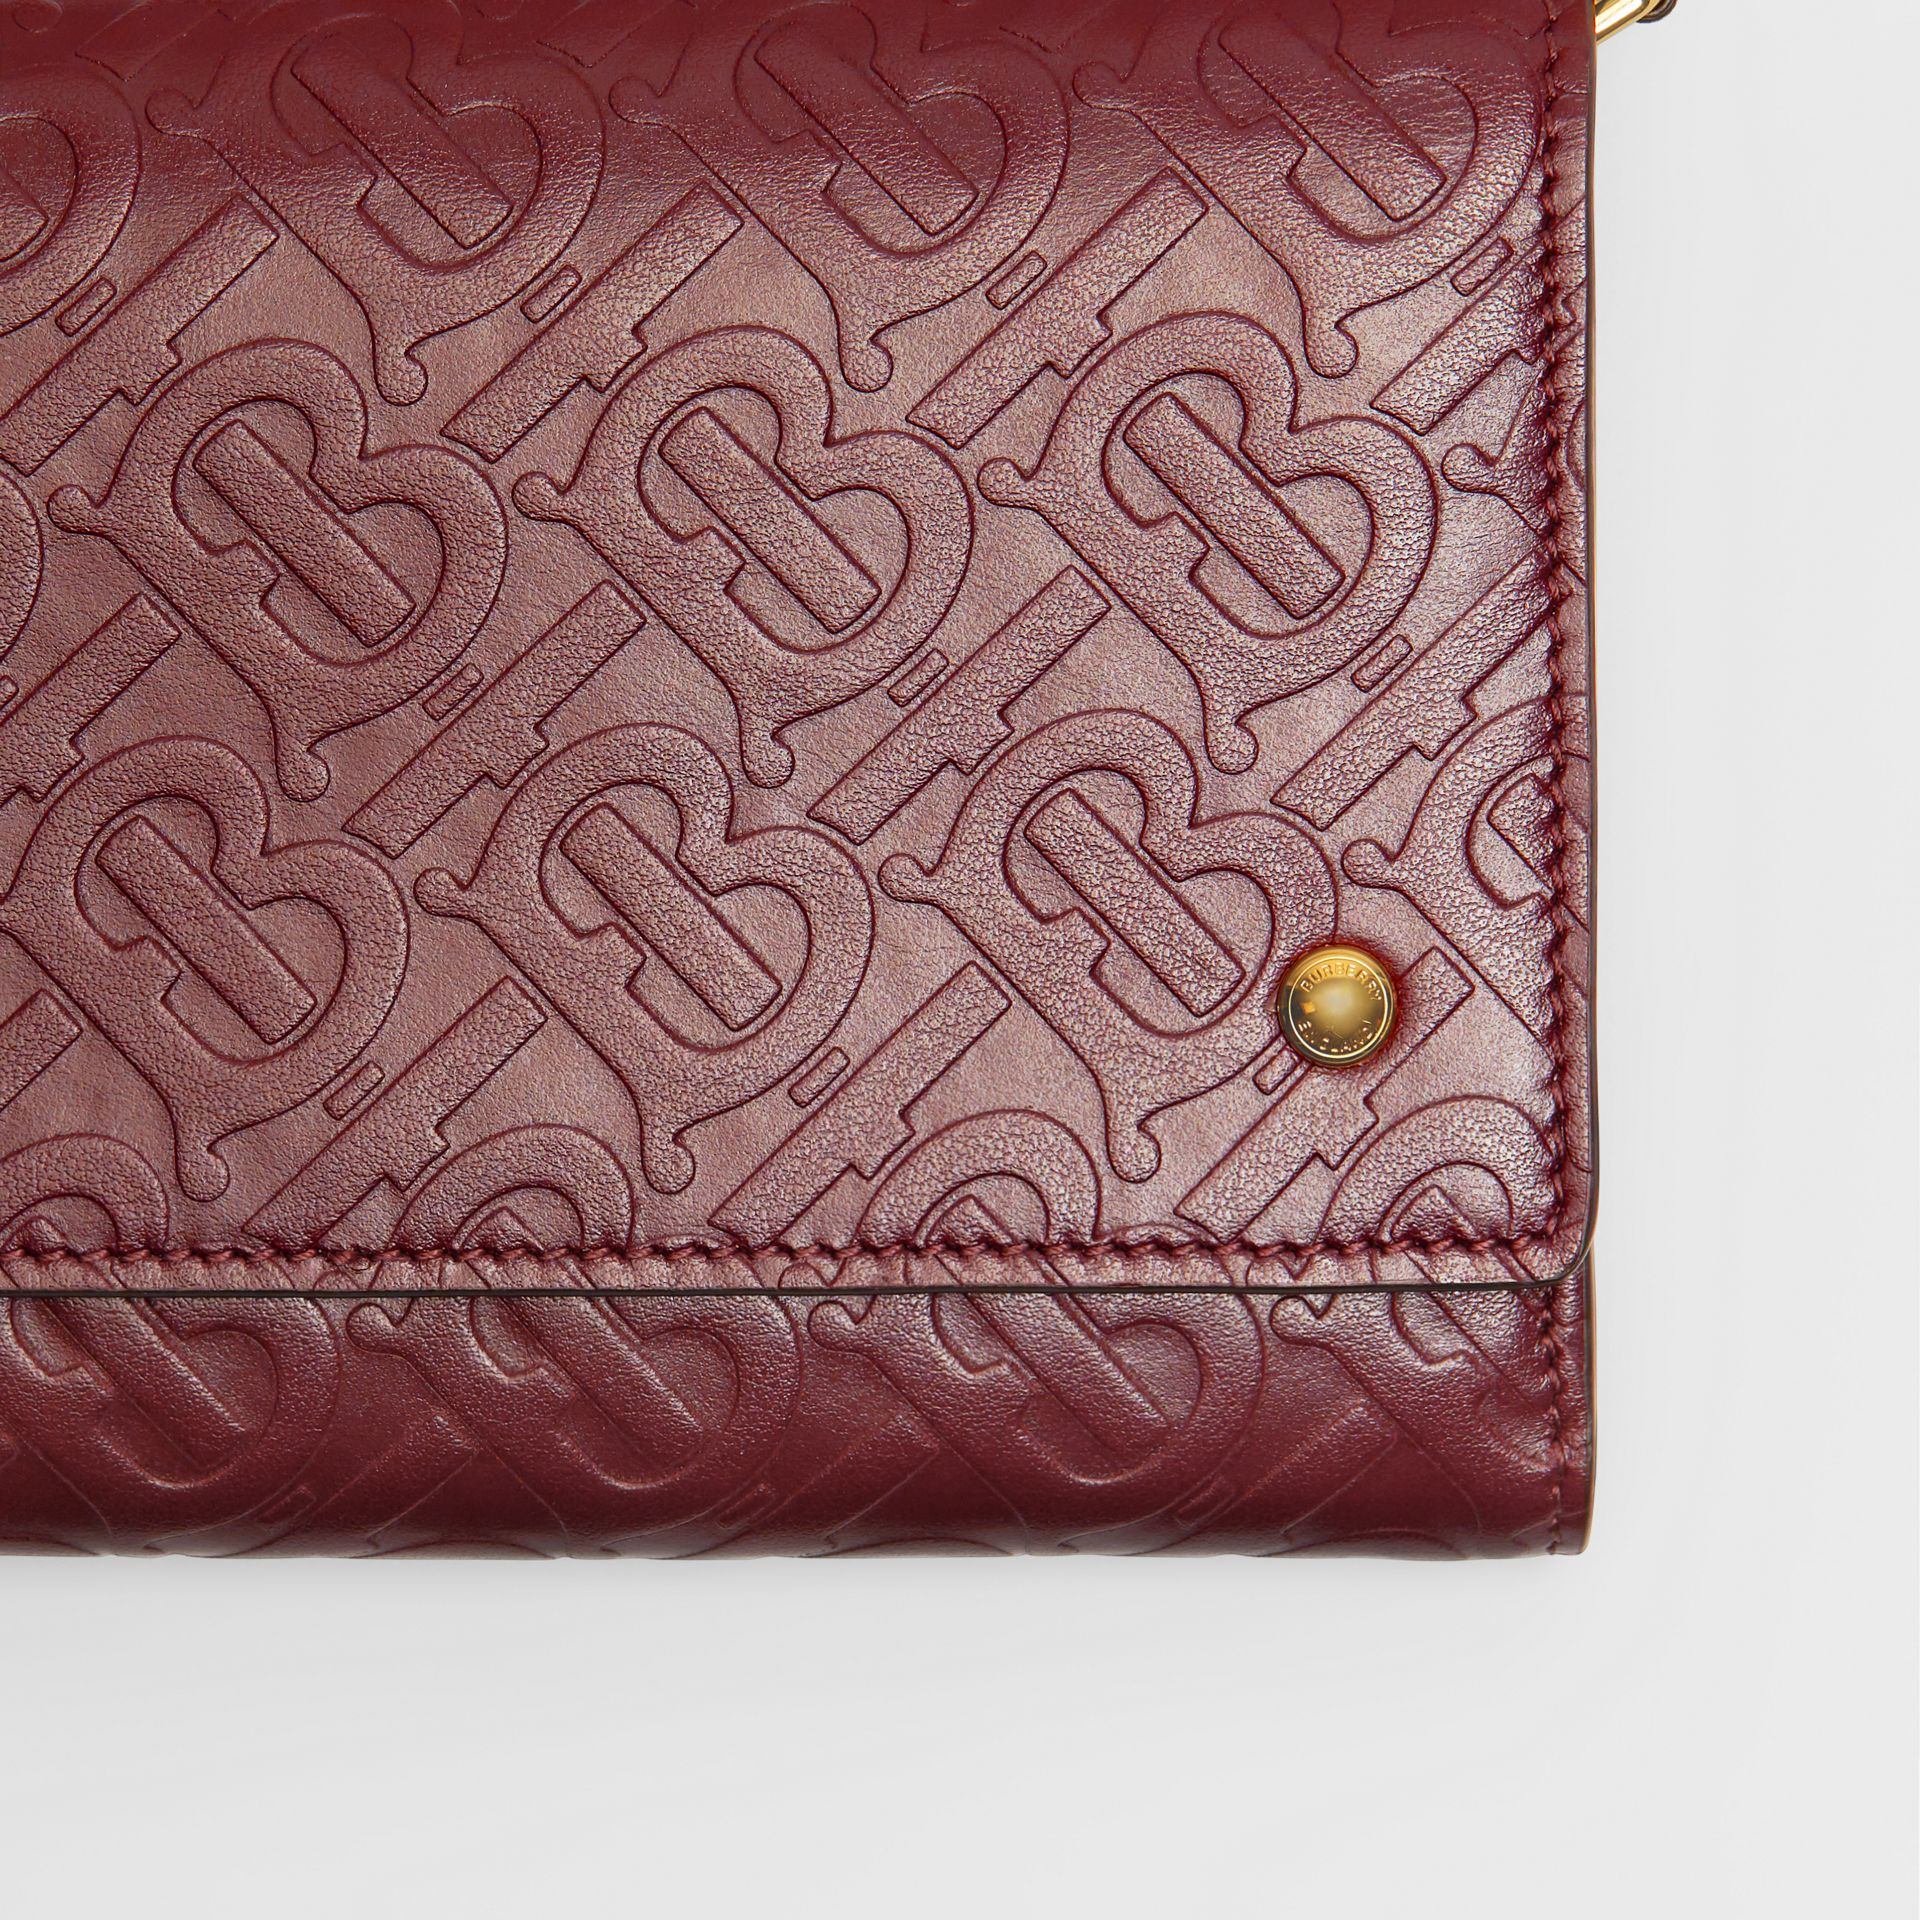 Portefeuille en cuir Monogram avec sangle amovible (Oxblood) - Femme | Burberry - photo de la galerie 1